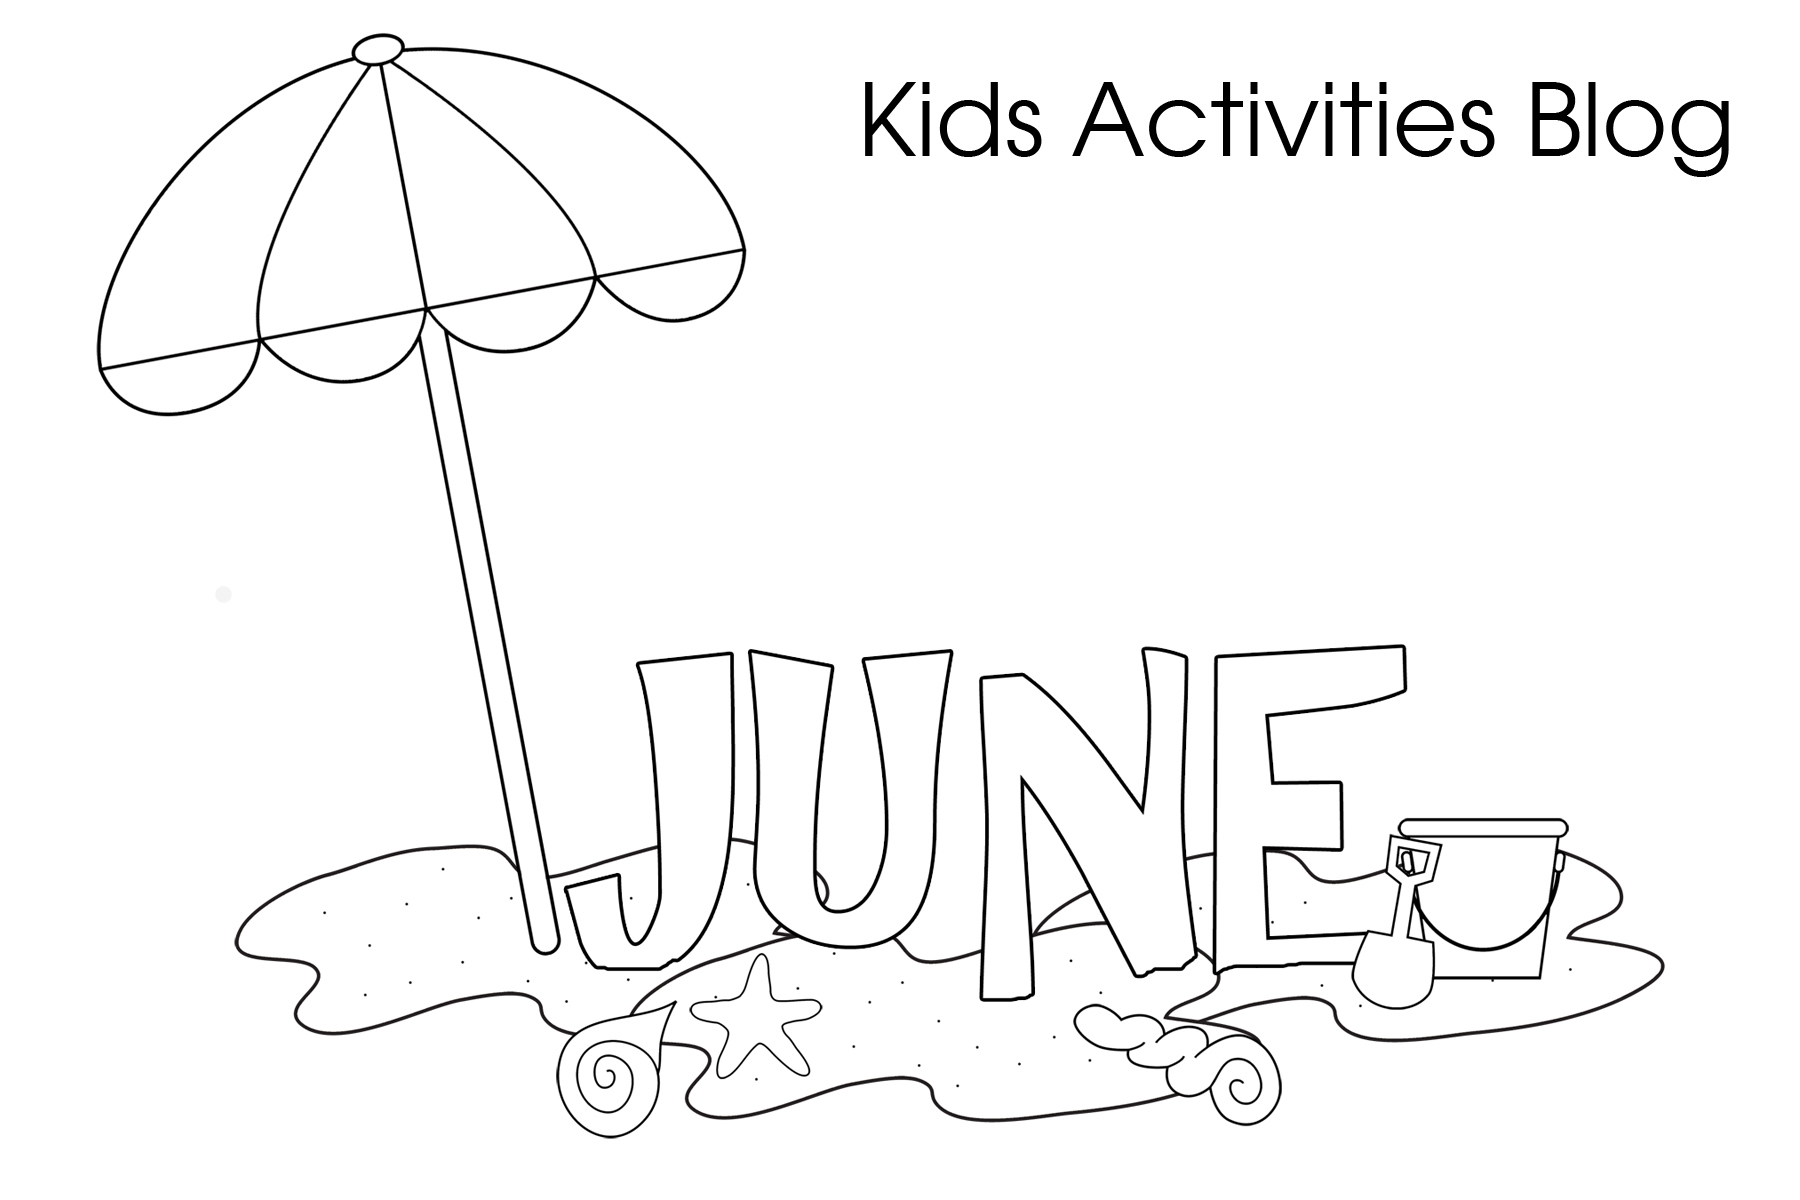 beach fun june coloring pages for kids